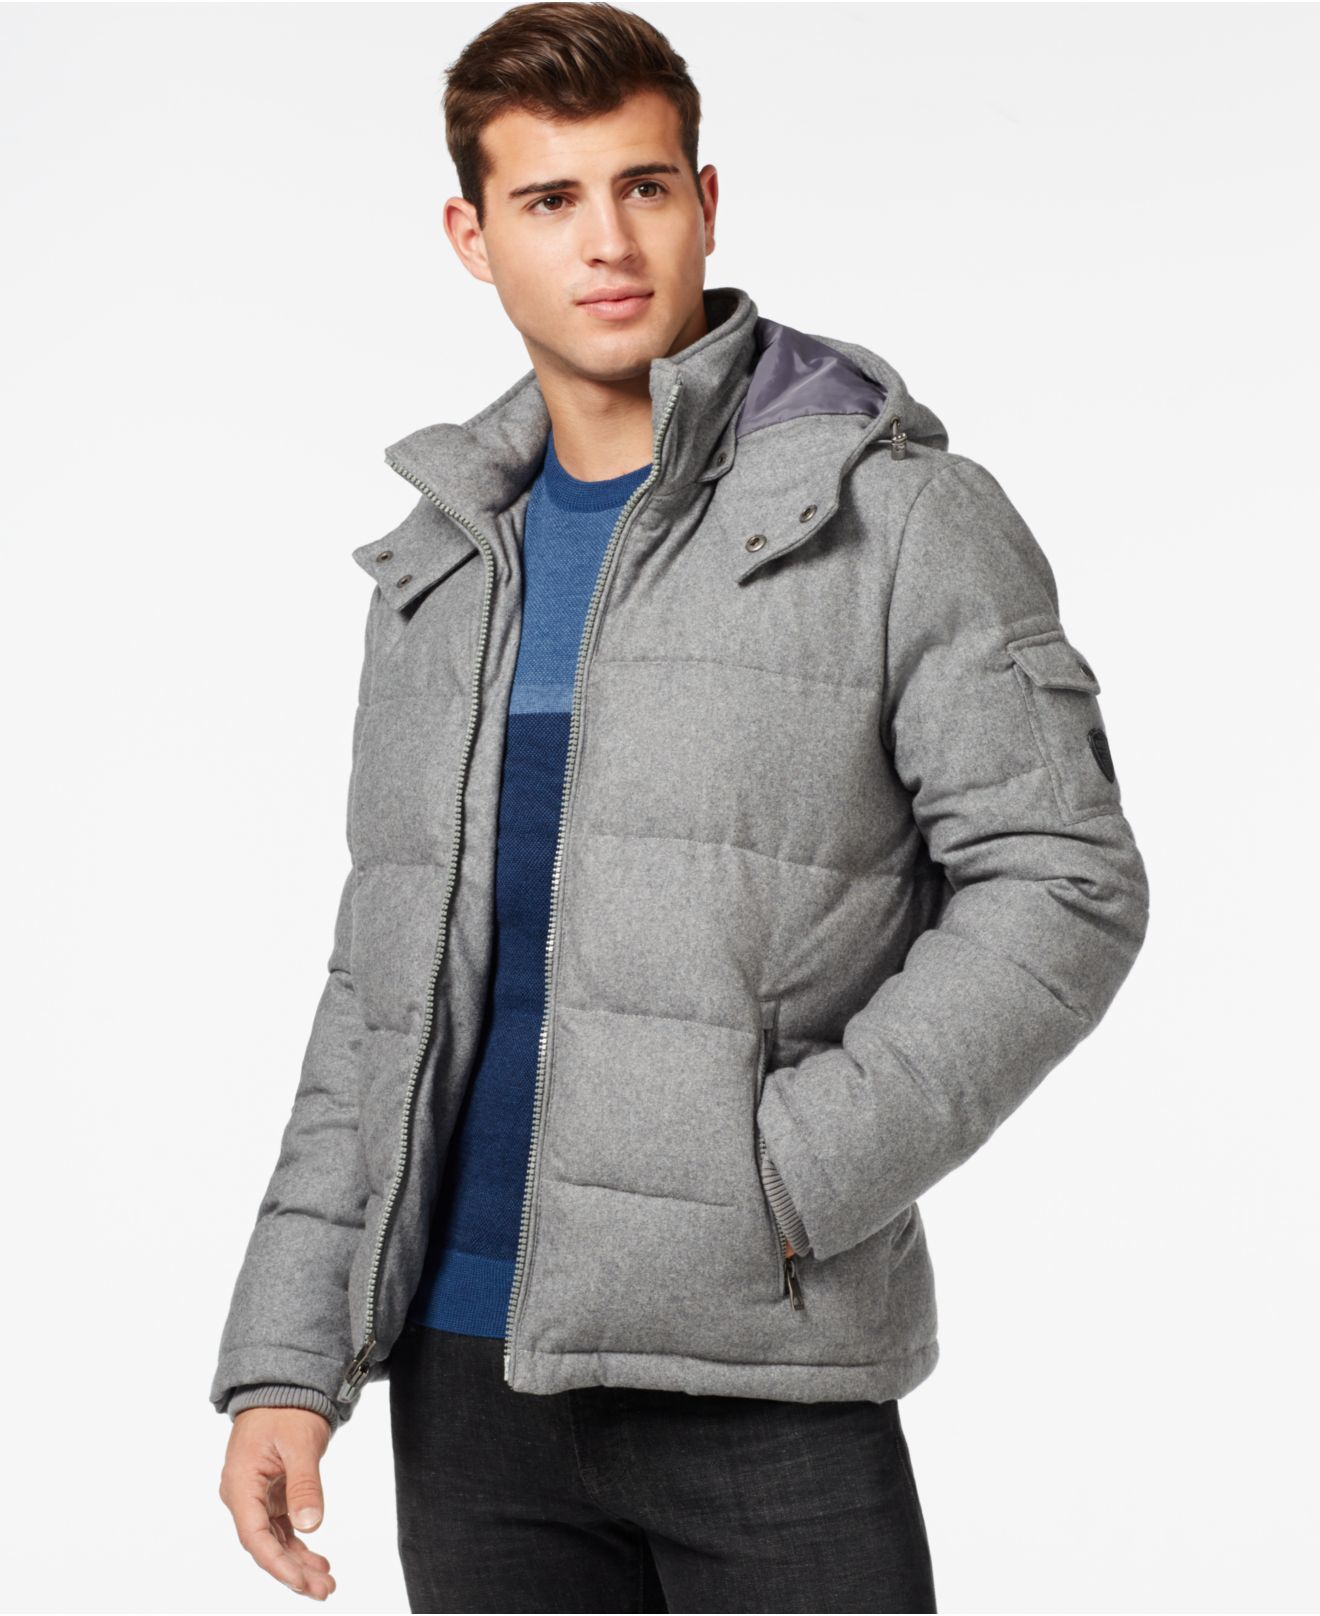 c7a2bb7cc872 Lyst - Guess Quilted Down-filled Jacket With Removable Hood in Gray ...